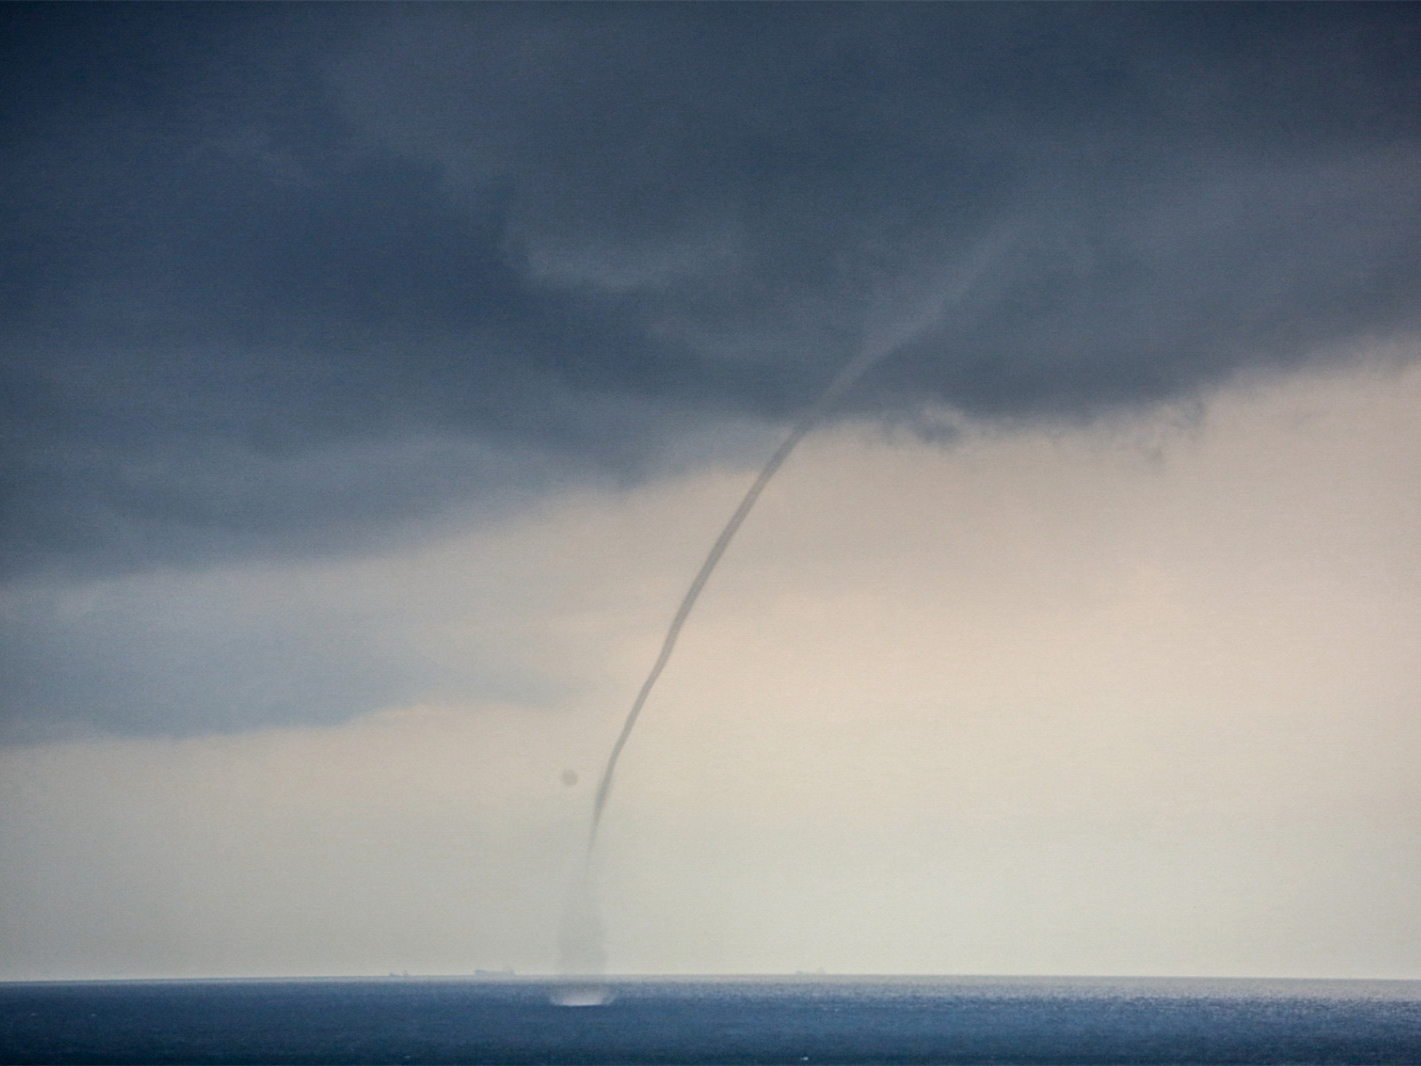 Waterspouts appear in China's Shandong Province